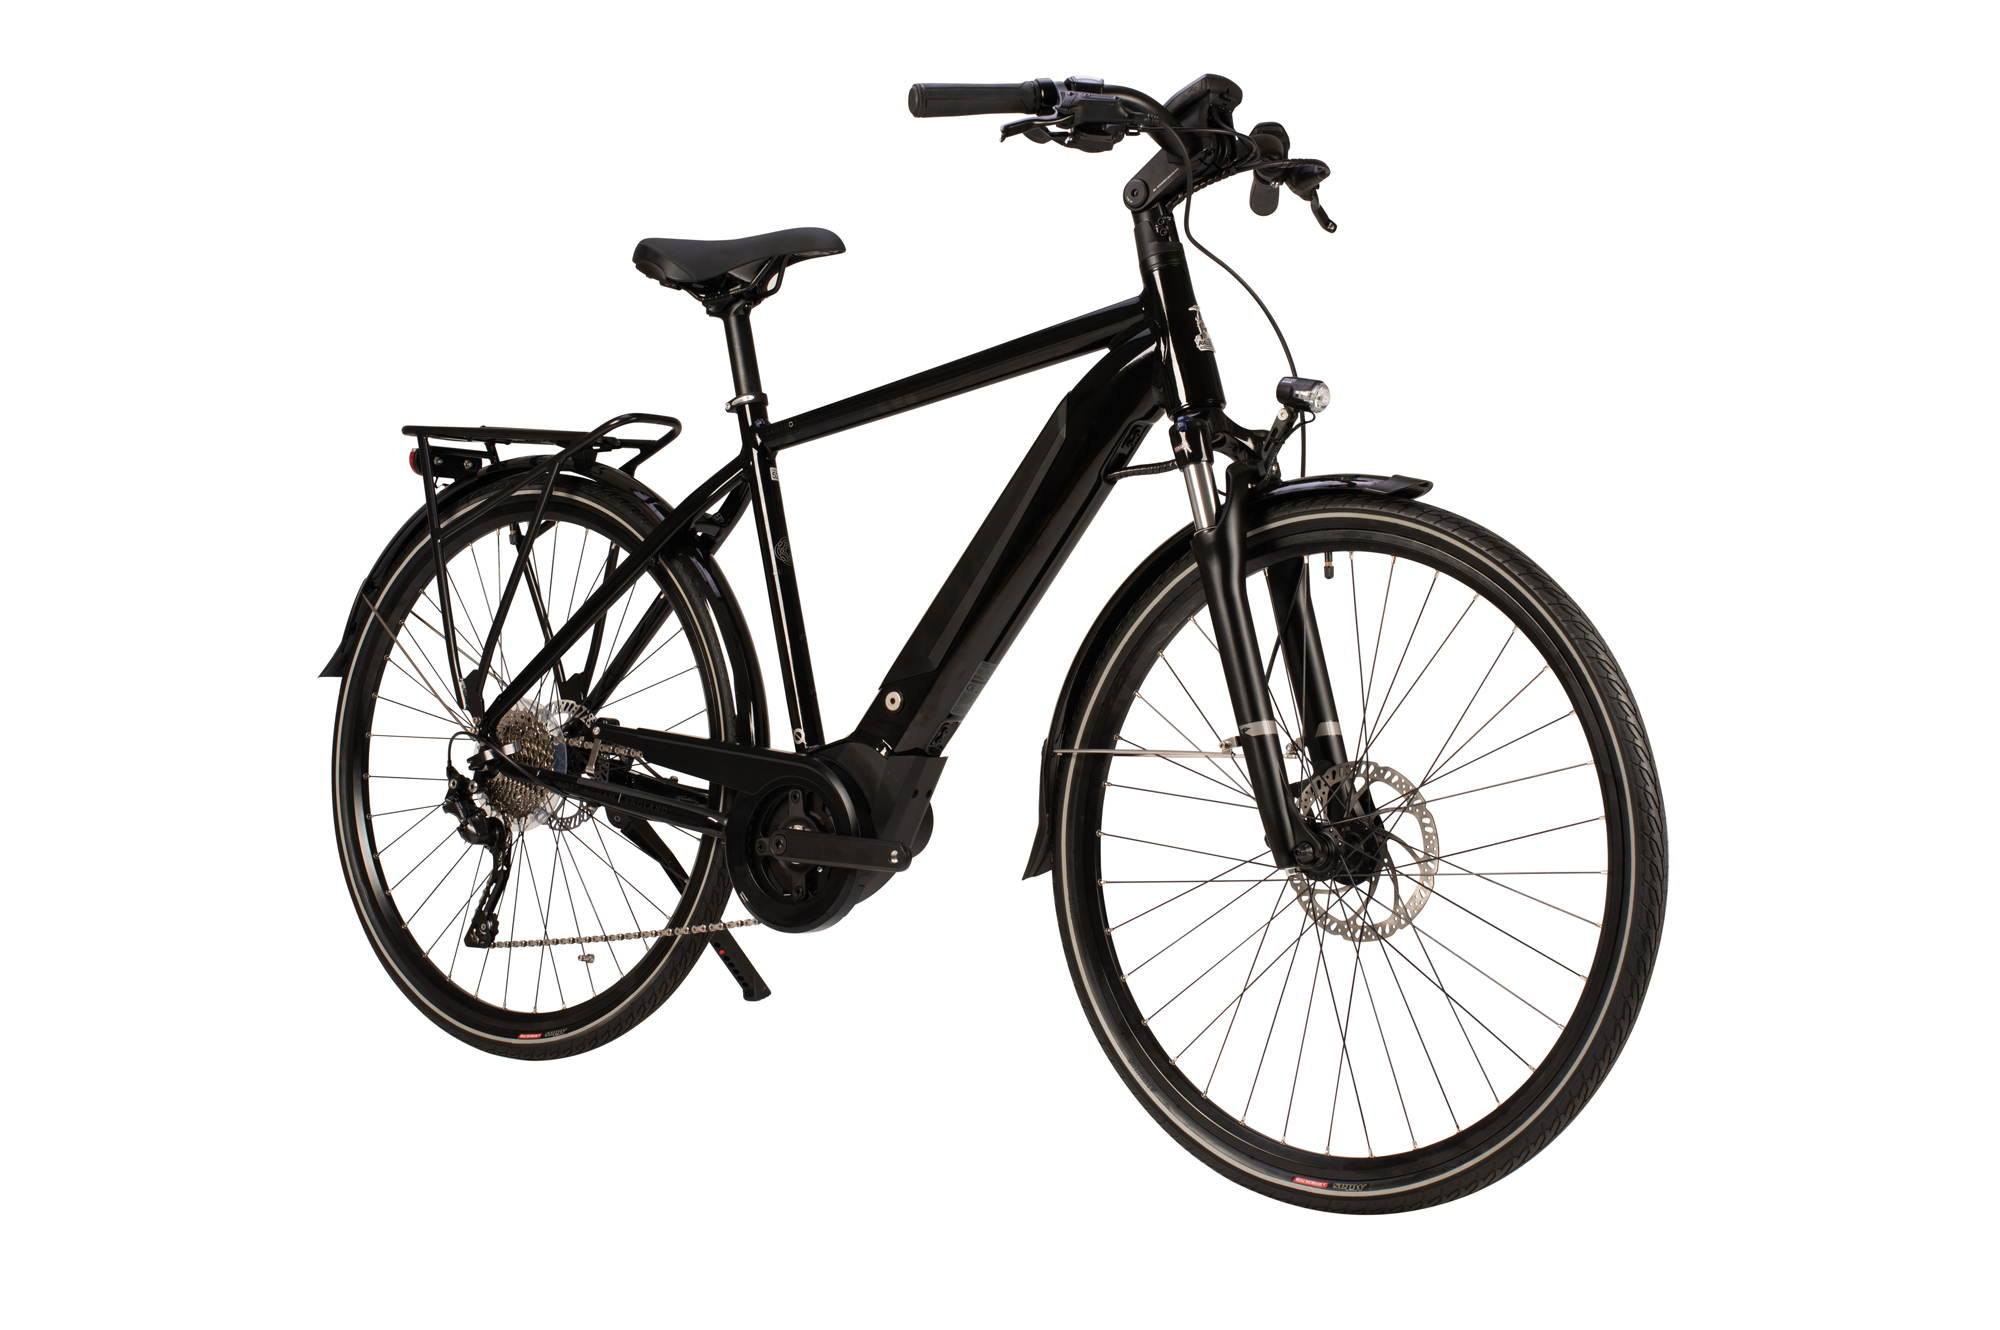 Front view of the Raleigh Centros Tour electric bike